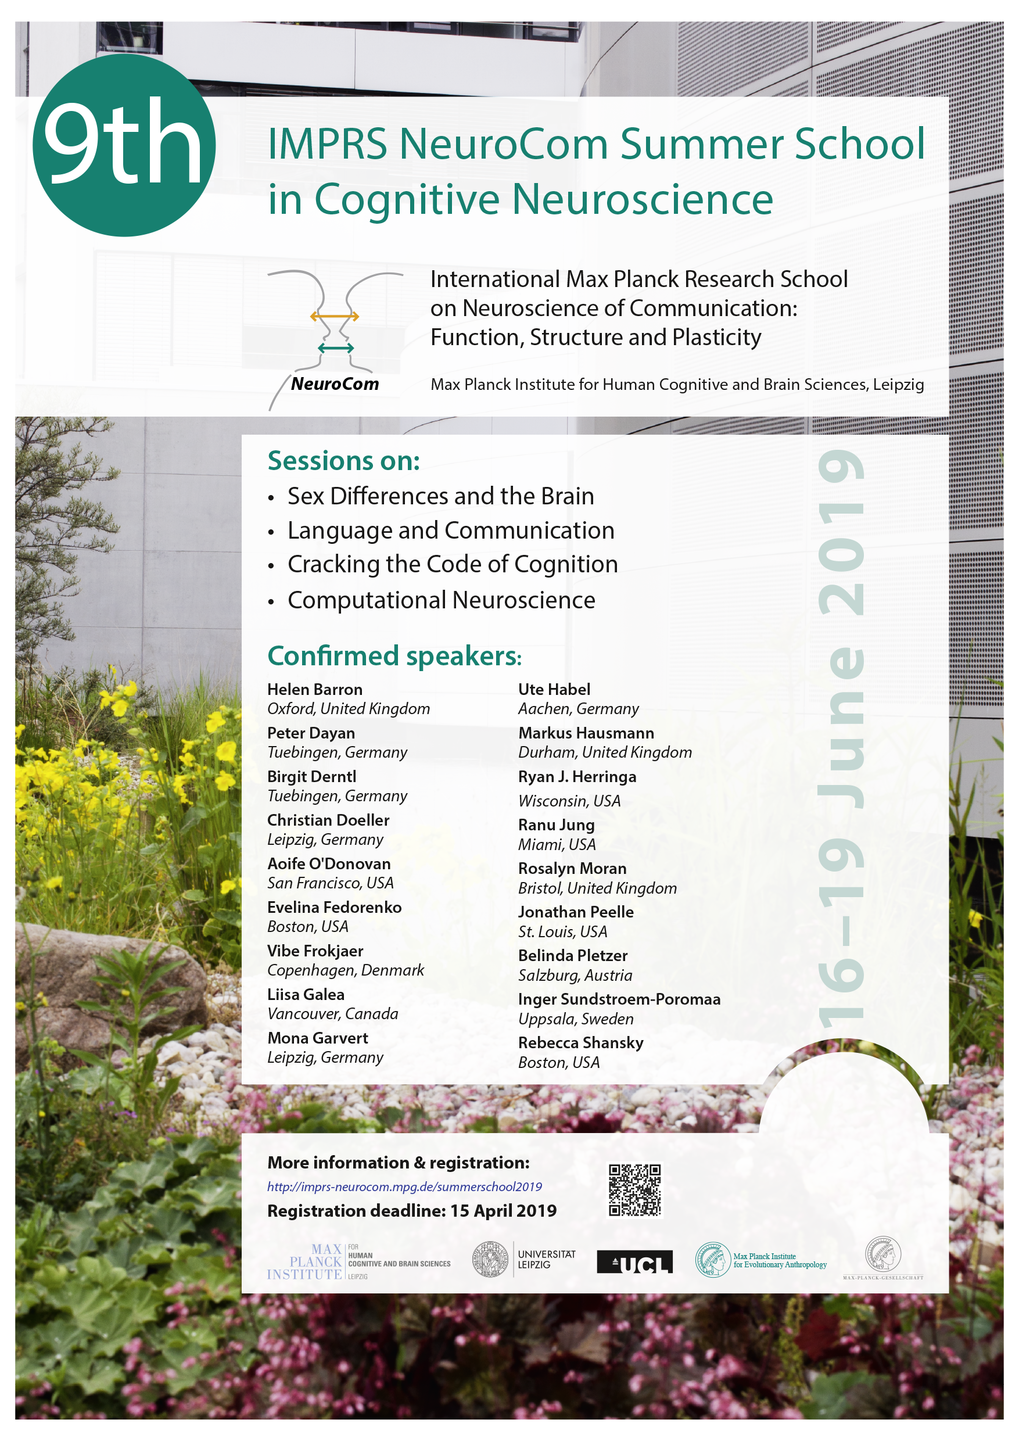 We are pleased to invite you to the 9th IMPRS NeuroCom Summer School in Cognitive Neuroscience, which will take place from 16-19 June 2019 at the Max Planck Institute for Human Cognitive and Brain Sciences in Leipzig, Germany. The summer school will bring together well-known scientists, postdocs and early career researchers from all over the world to enlighten and discuss some key topics of Cognitive Neuroscience. The organization committee has invited a wide range of renowned scientists from around the globe as well as local speakers from Germany. Sessions will cover the following themes:  Sex Differences and the Brain Language and Communication Cracking the Code of Cognition Computational Neuroscience